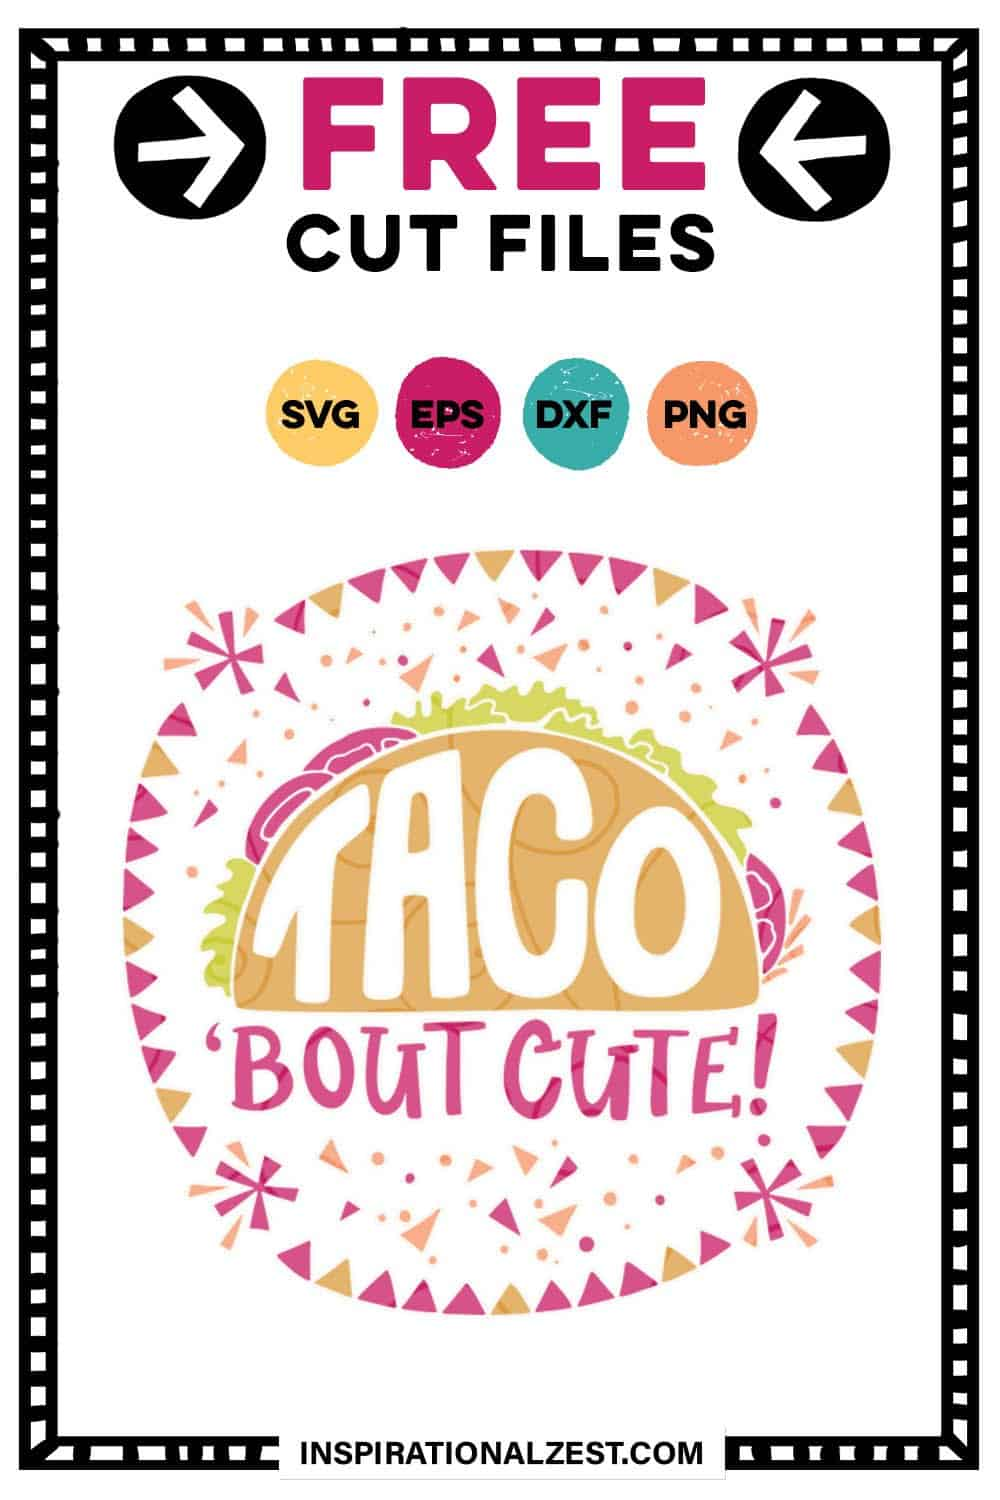 Taco \'Bout CUTE FREE SVG File